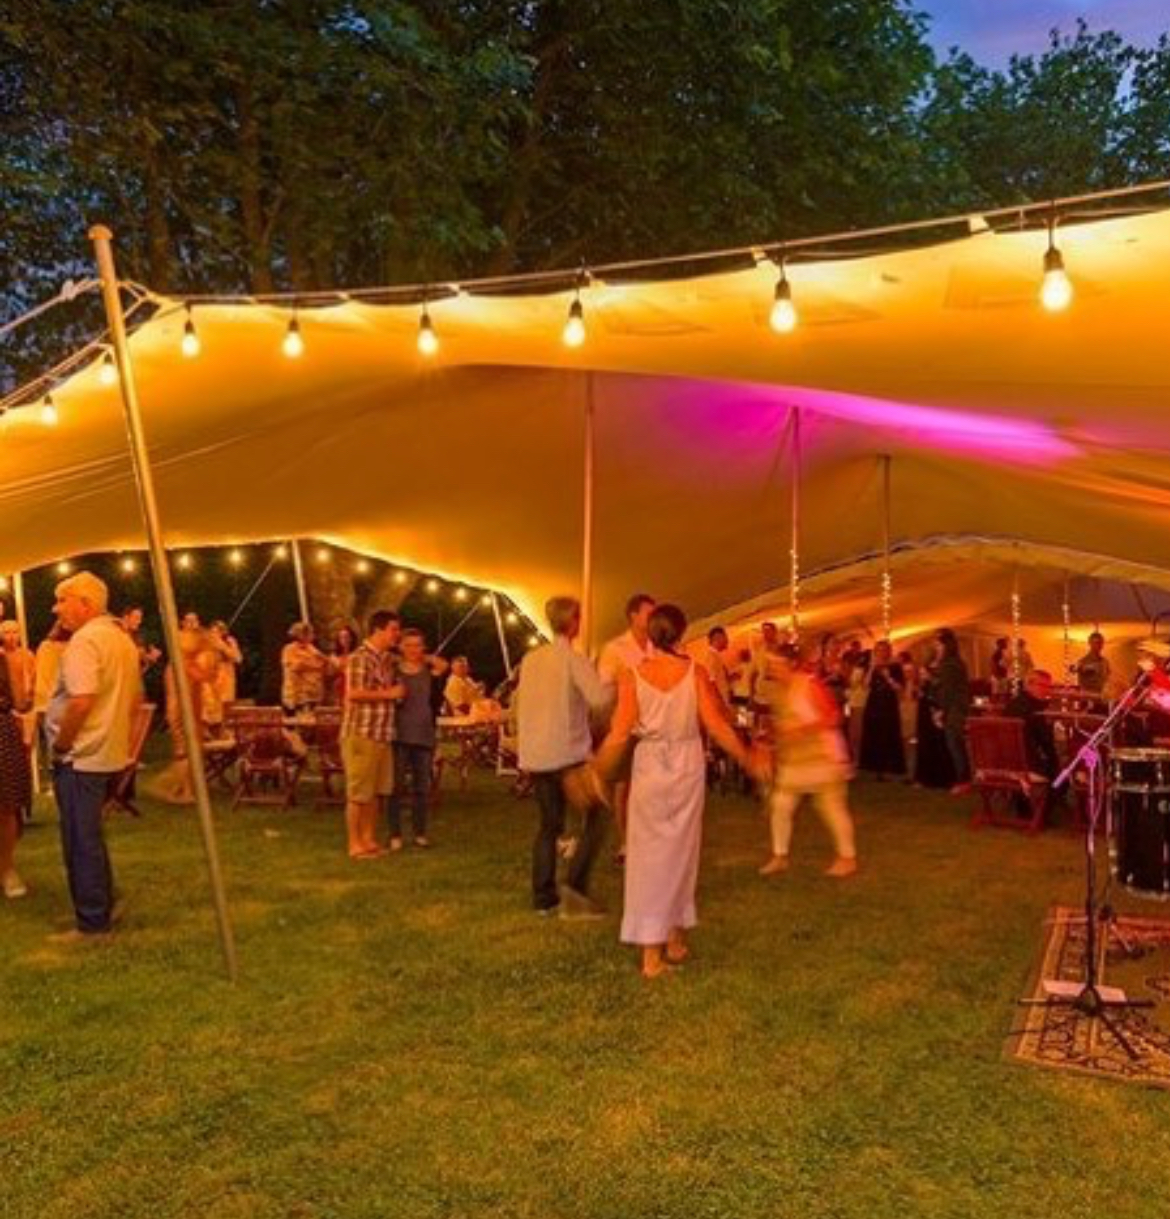 - Our Stretch Tents are very versatile and can be rigged to create amazing open but sheltered spaces…